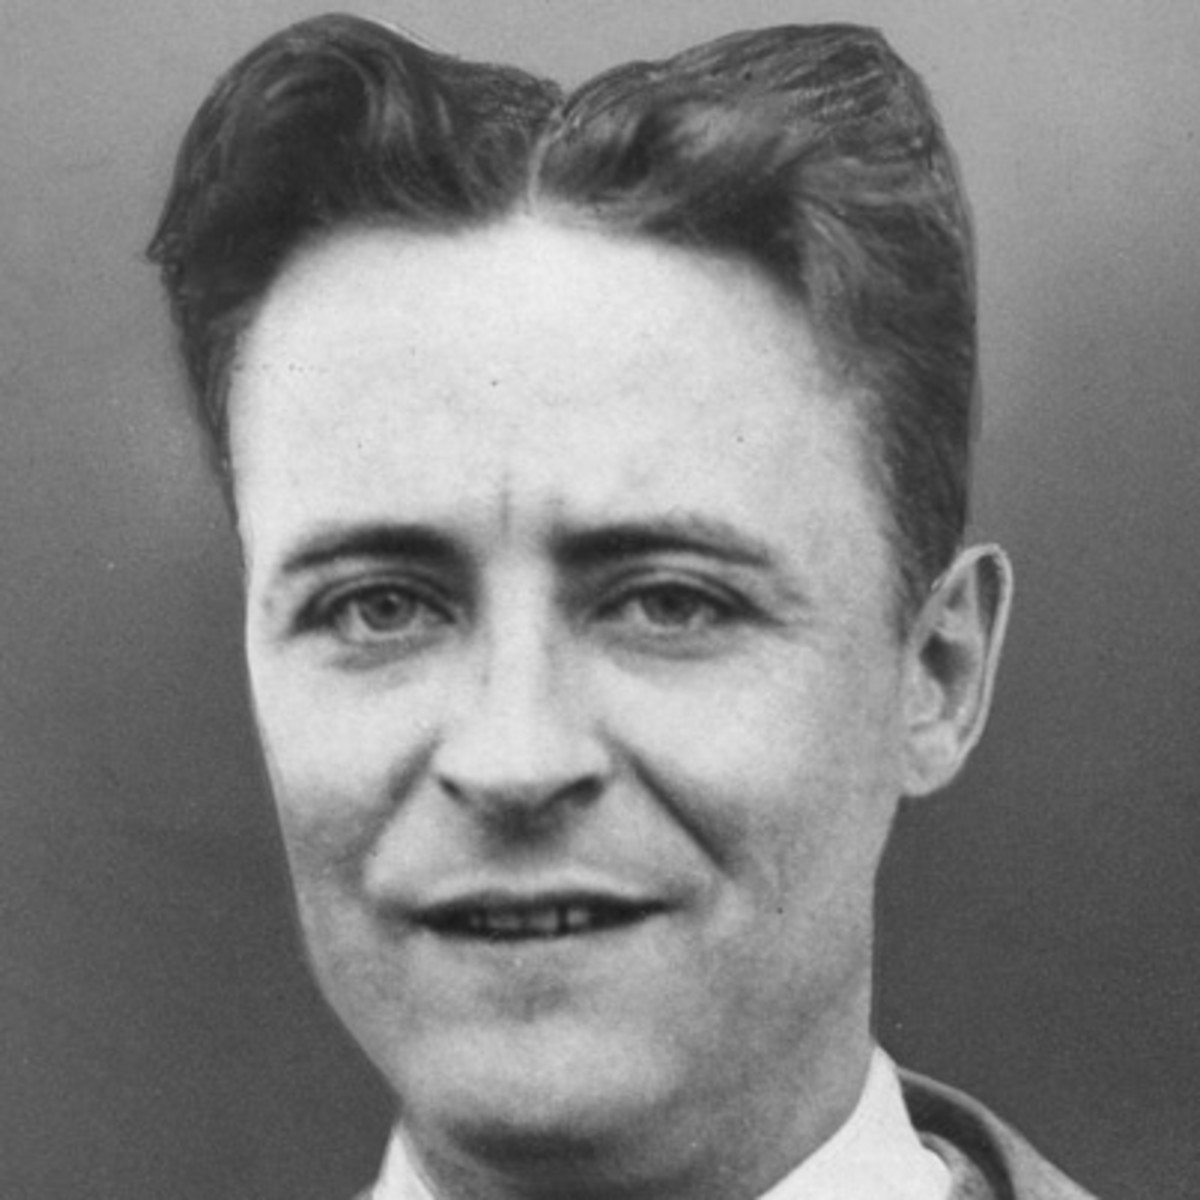 f scott fitzgerald author com